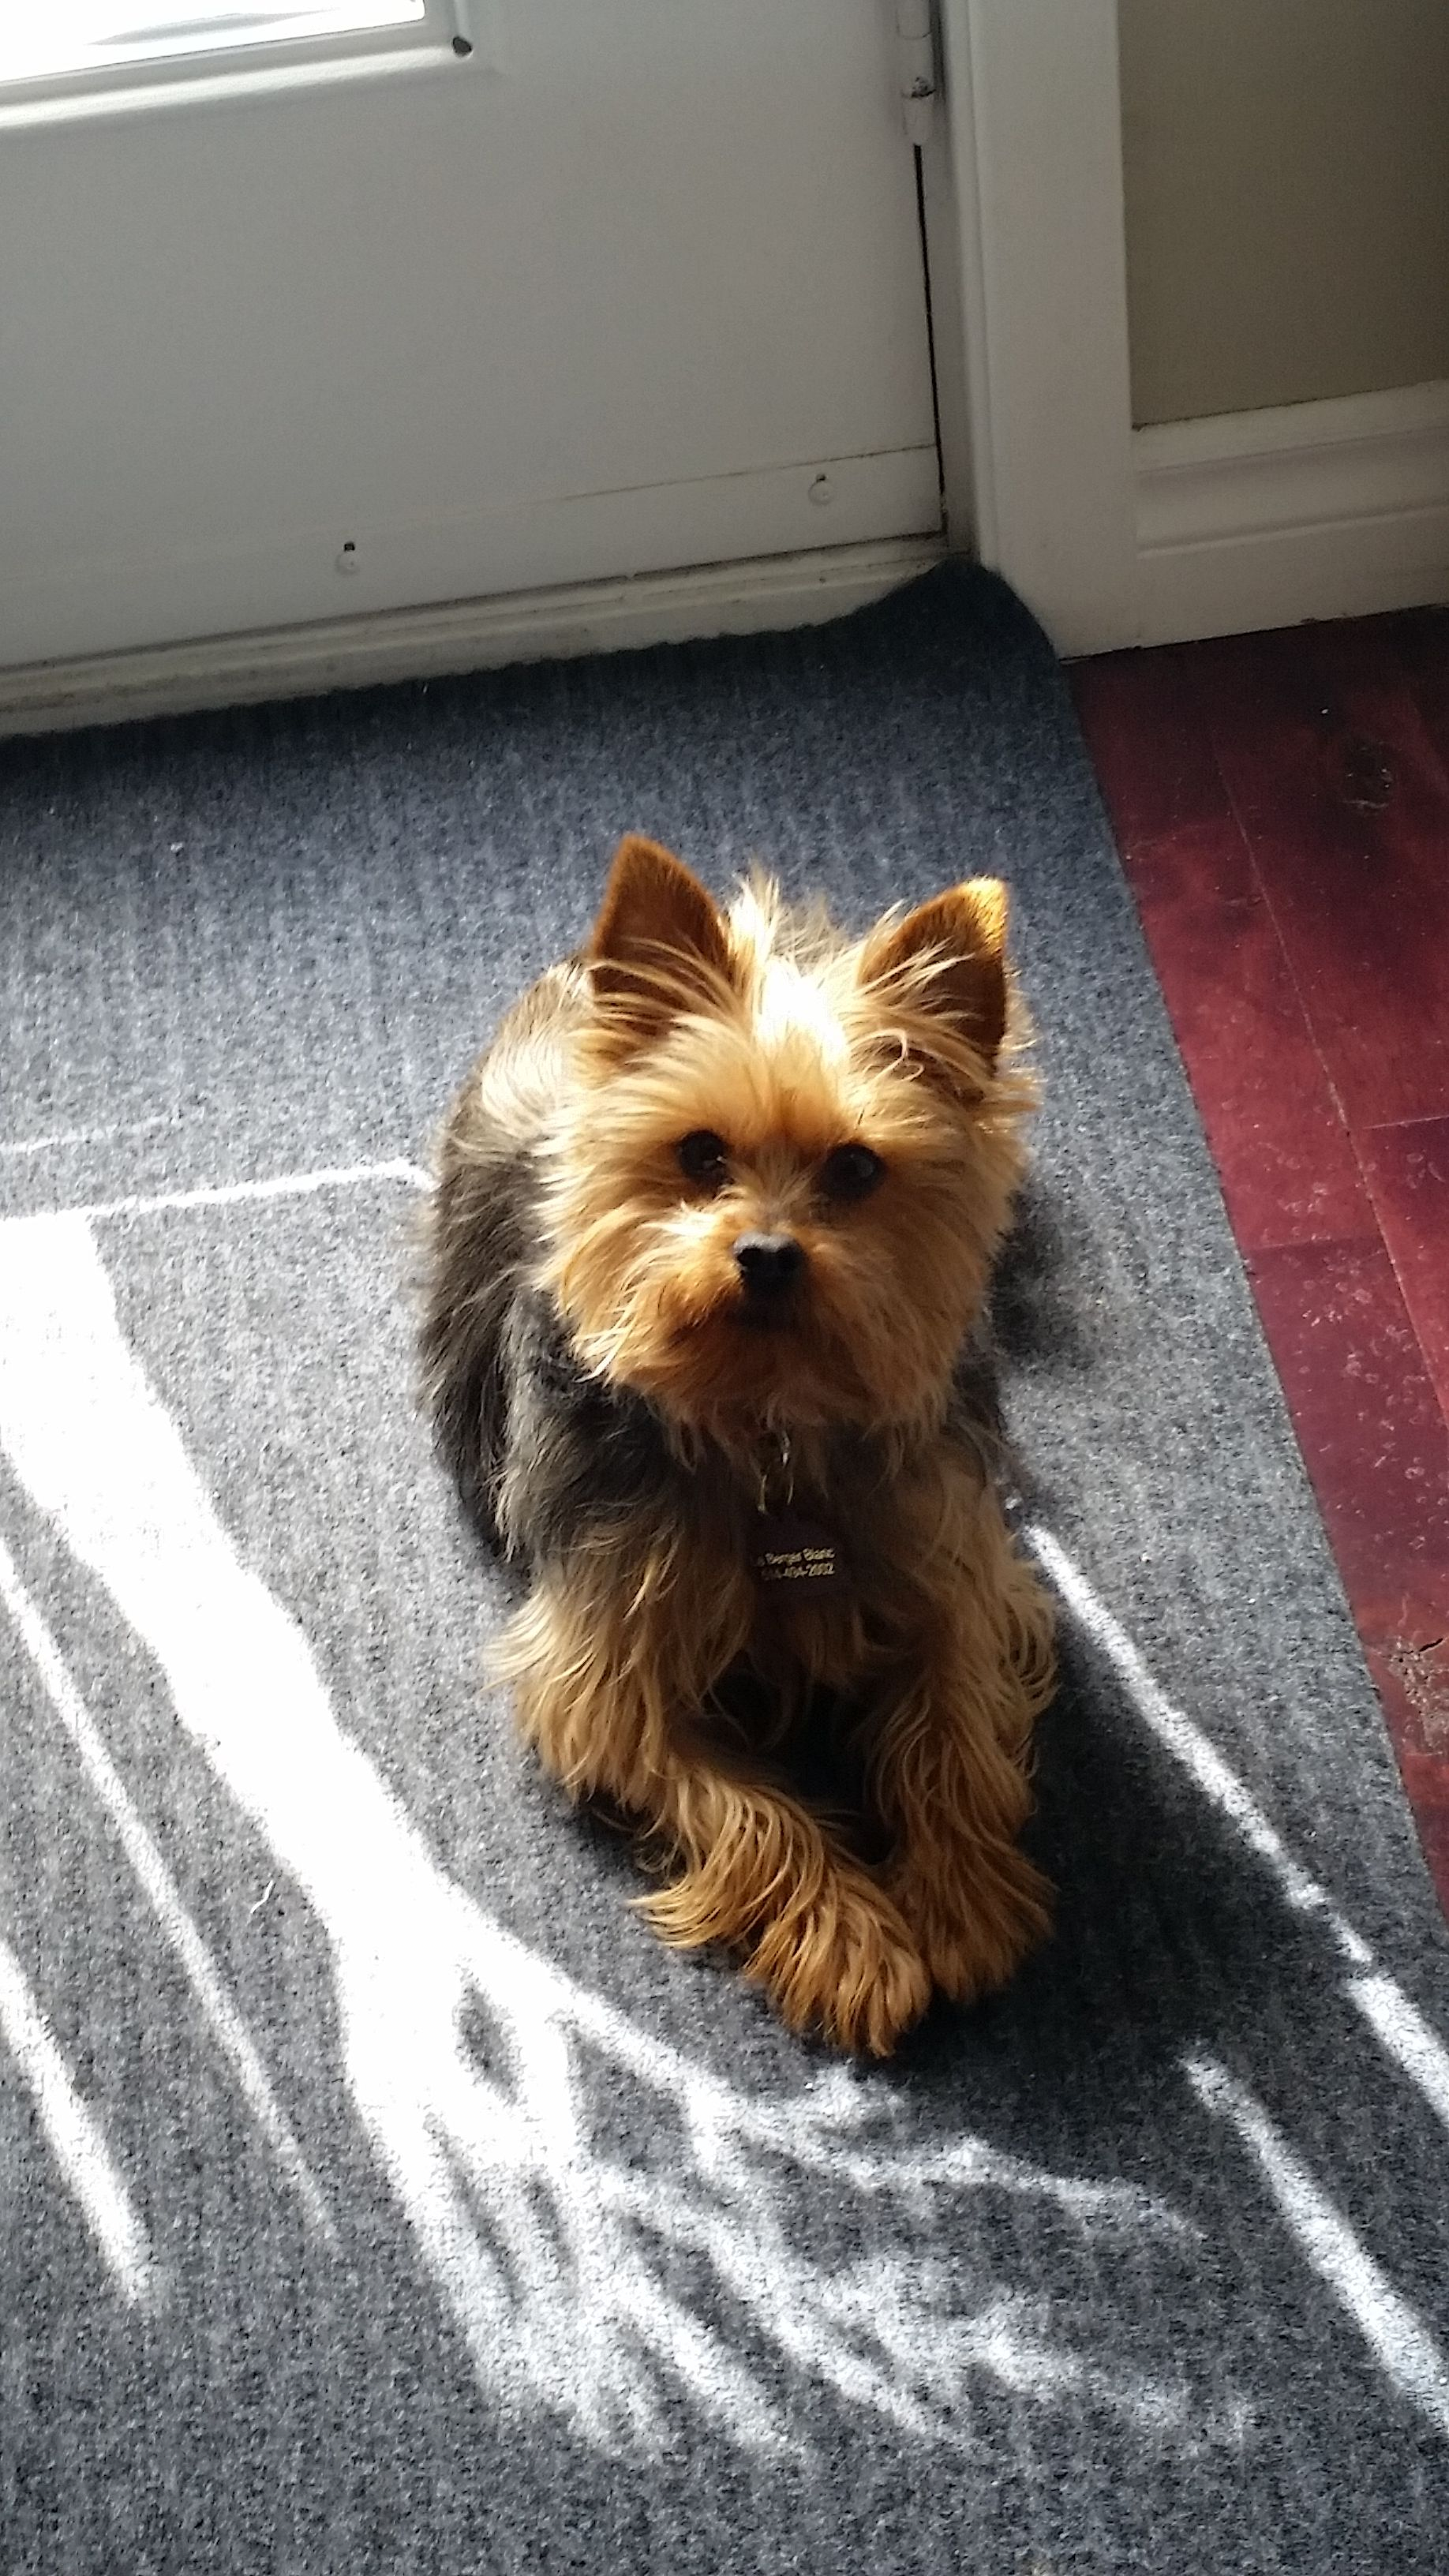 Pin By Sherry Monasterio On Yorkshire Terriers Terrier Yorkshire Terrier Animals